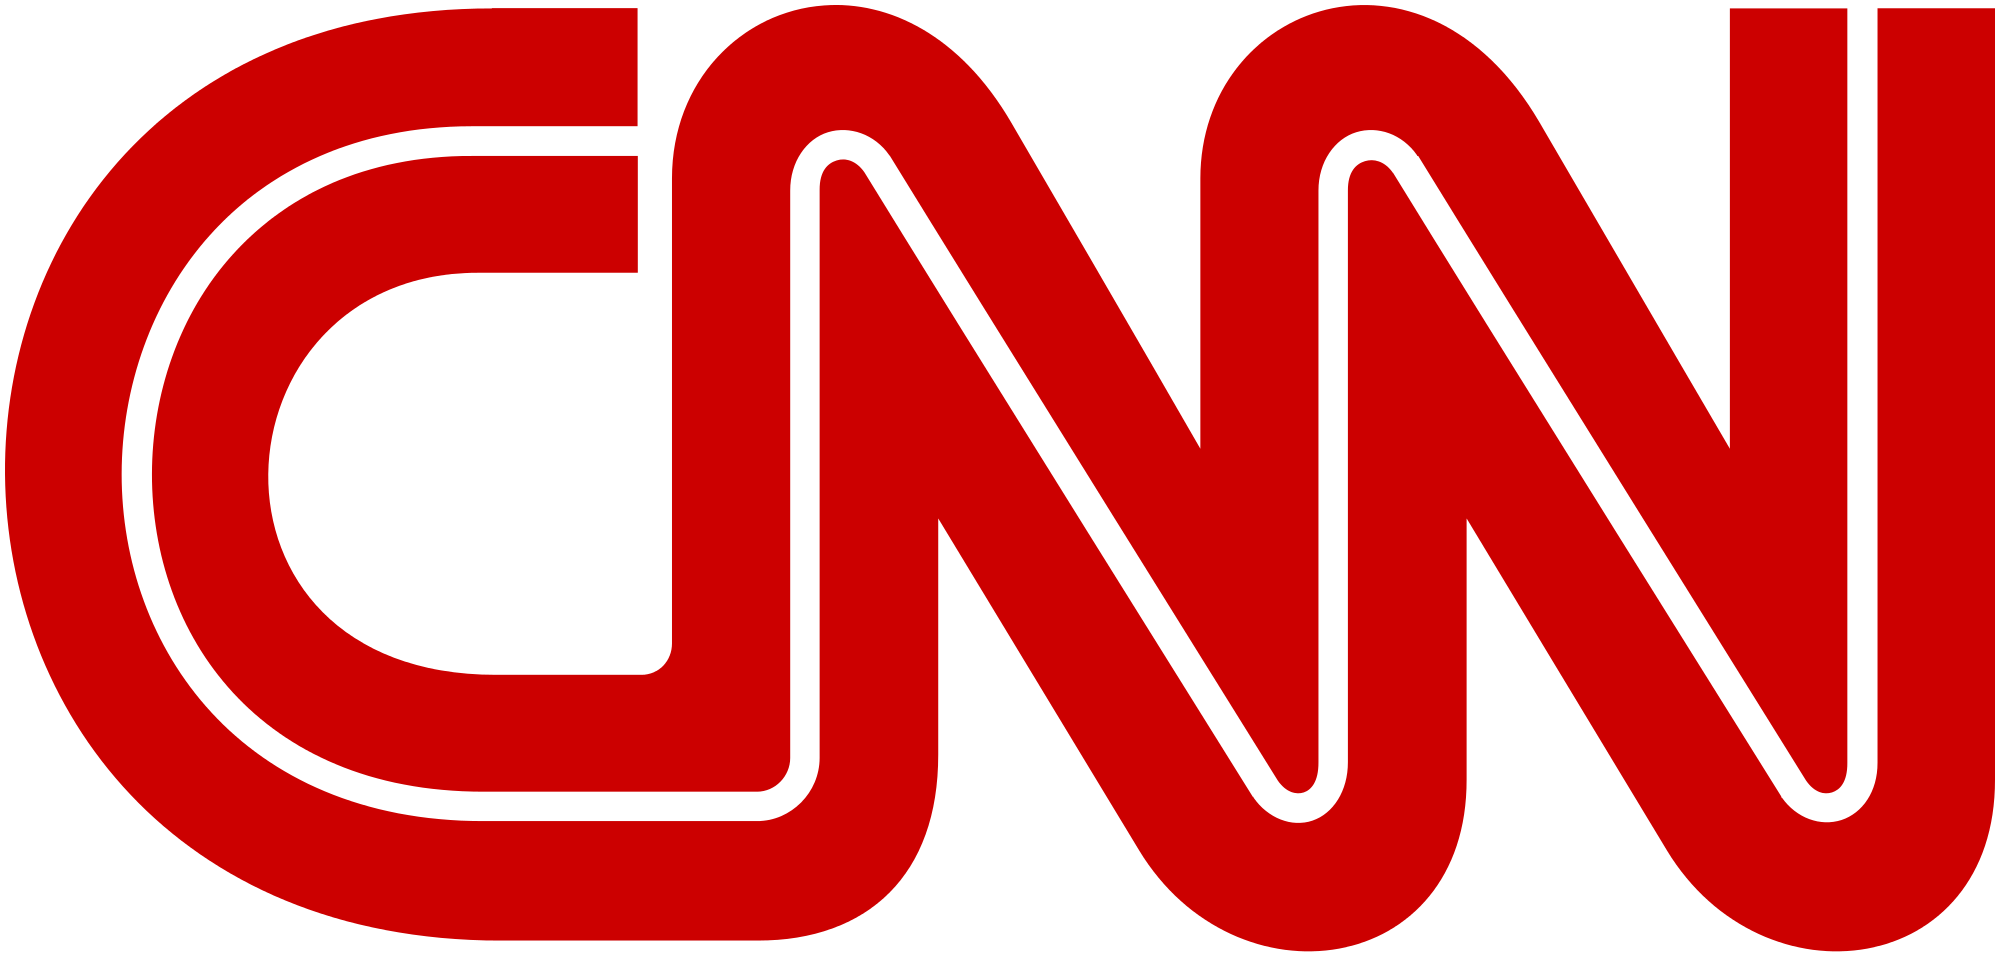 cnn-logo-transparent.png